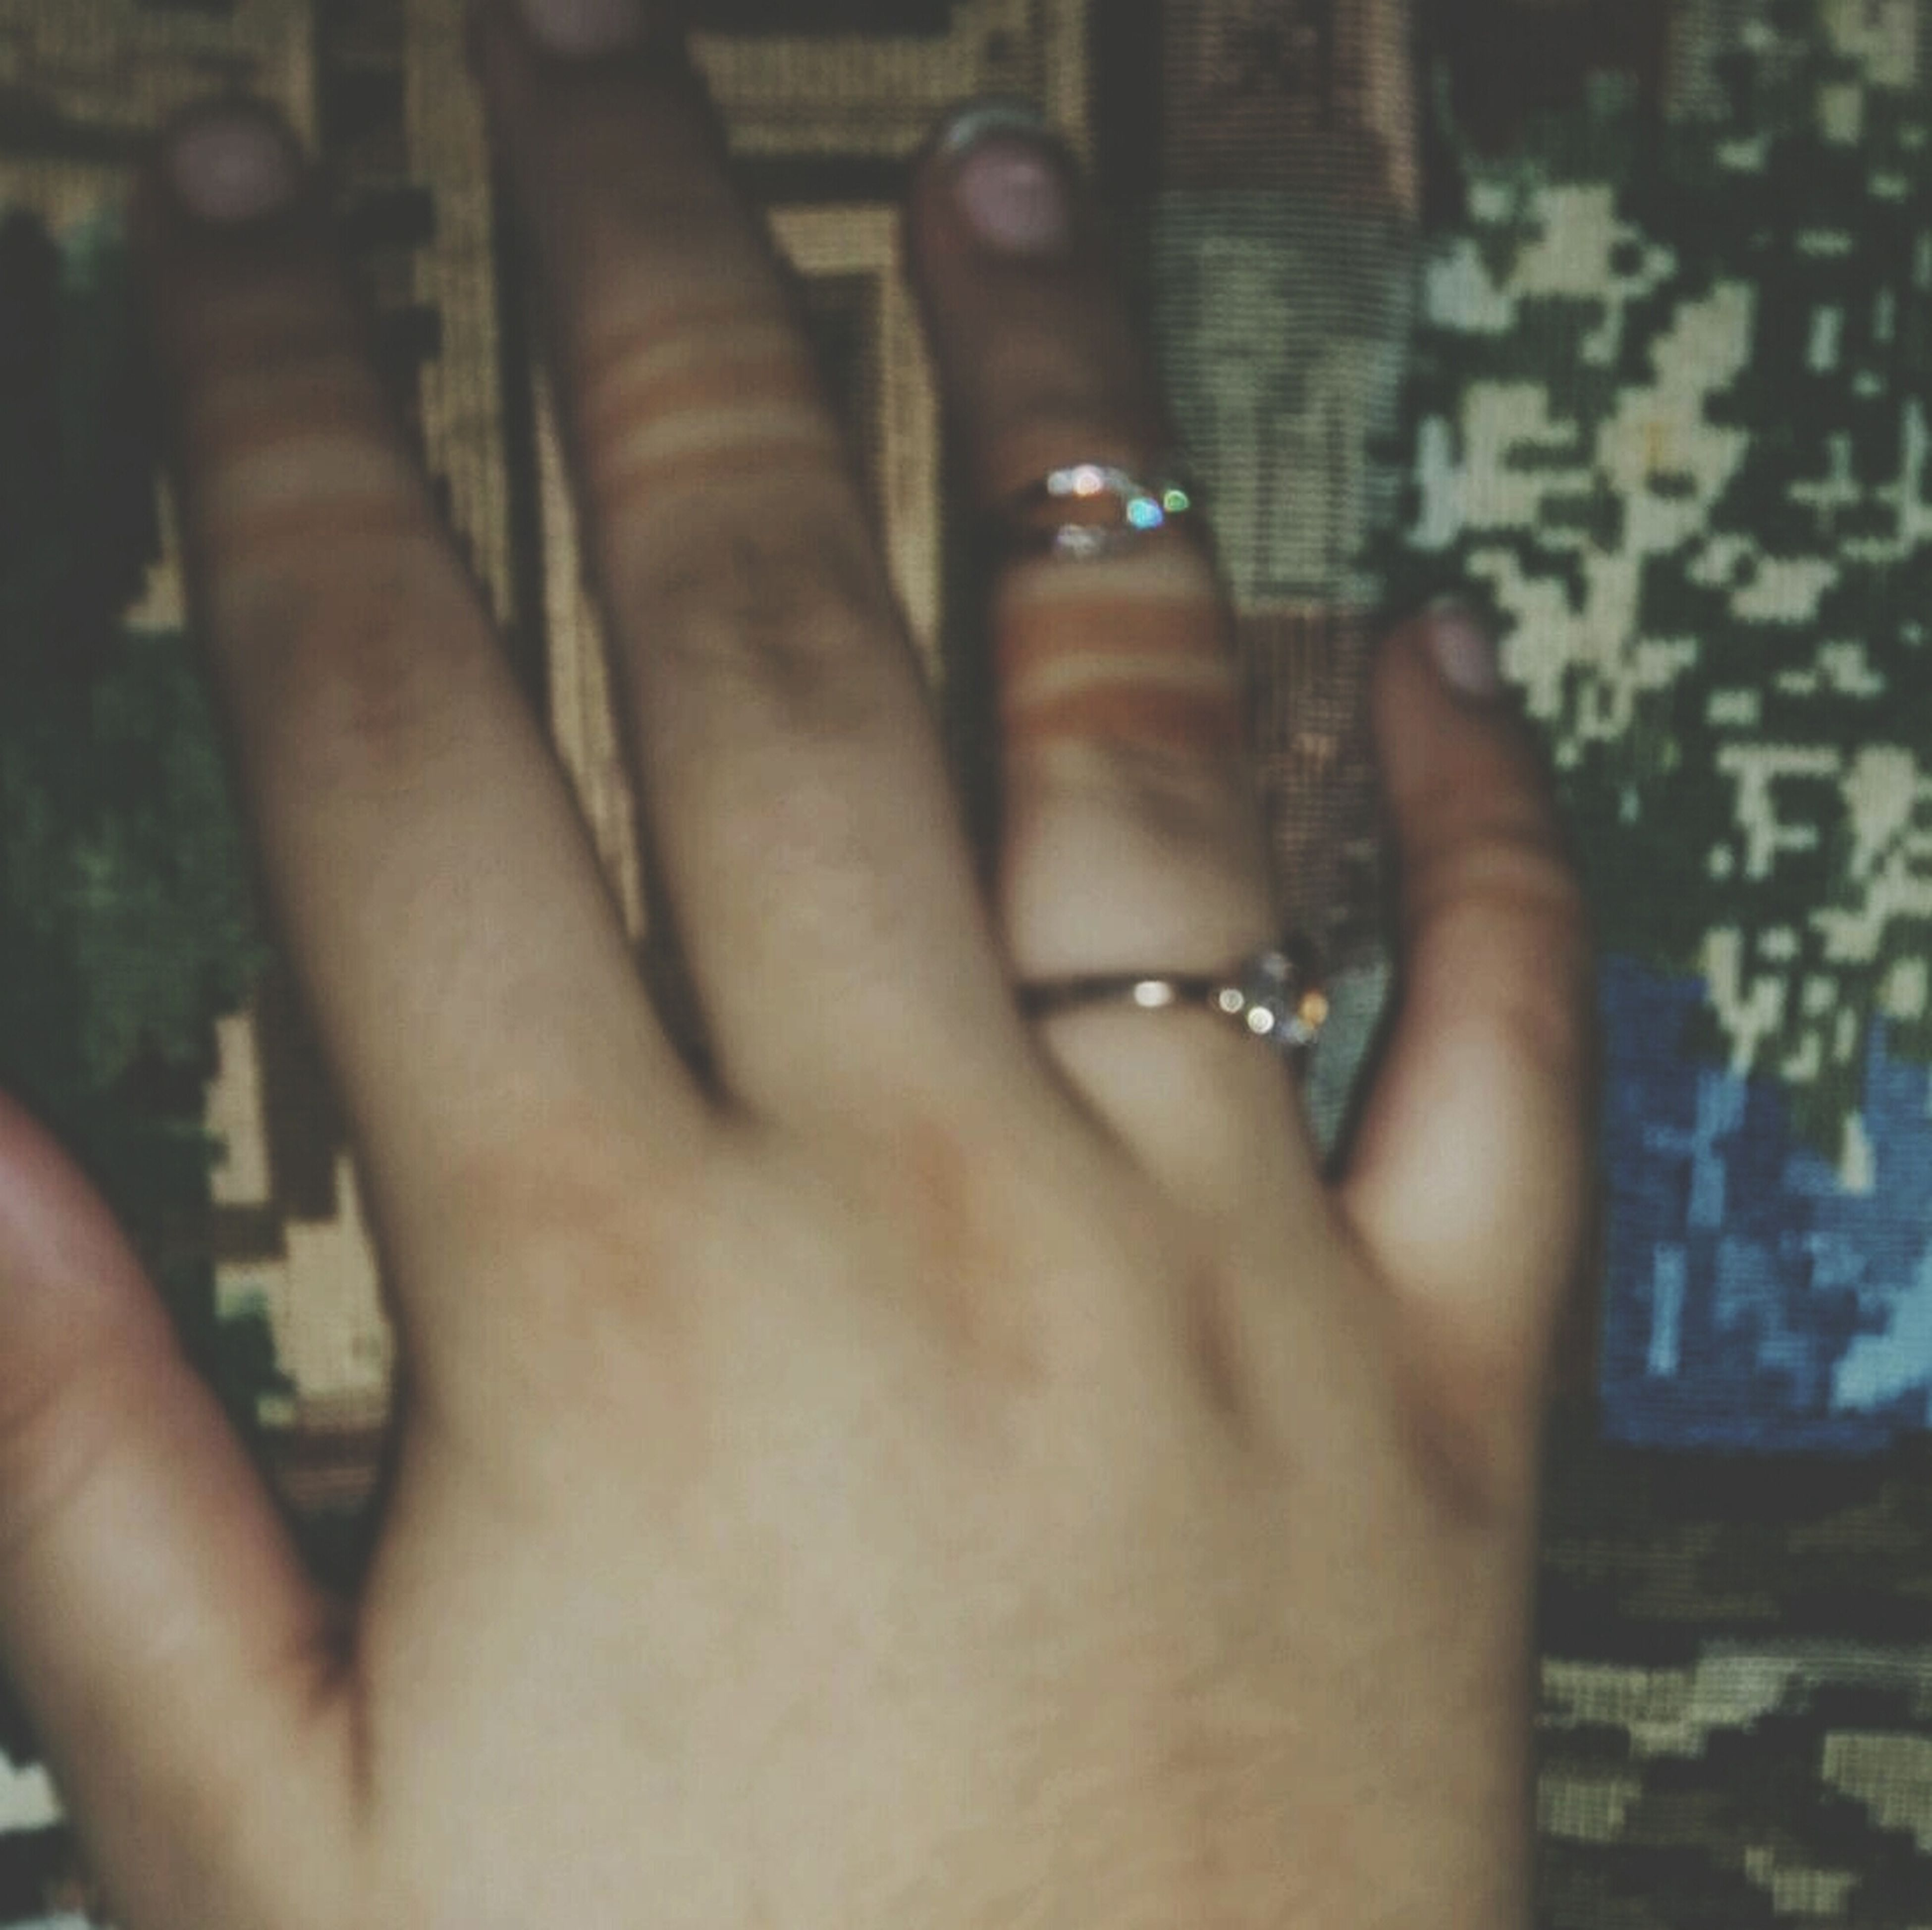 person, part of, human finger, lifestyles, cropped, close-up, holding, personal perspective, leisure activity, unrecognizable person, human skin, indoors, focus on foreground, ring, touching, palm